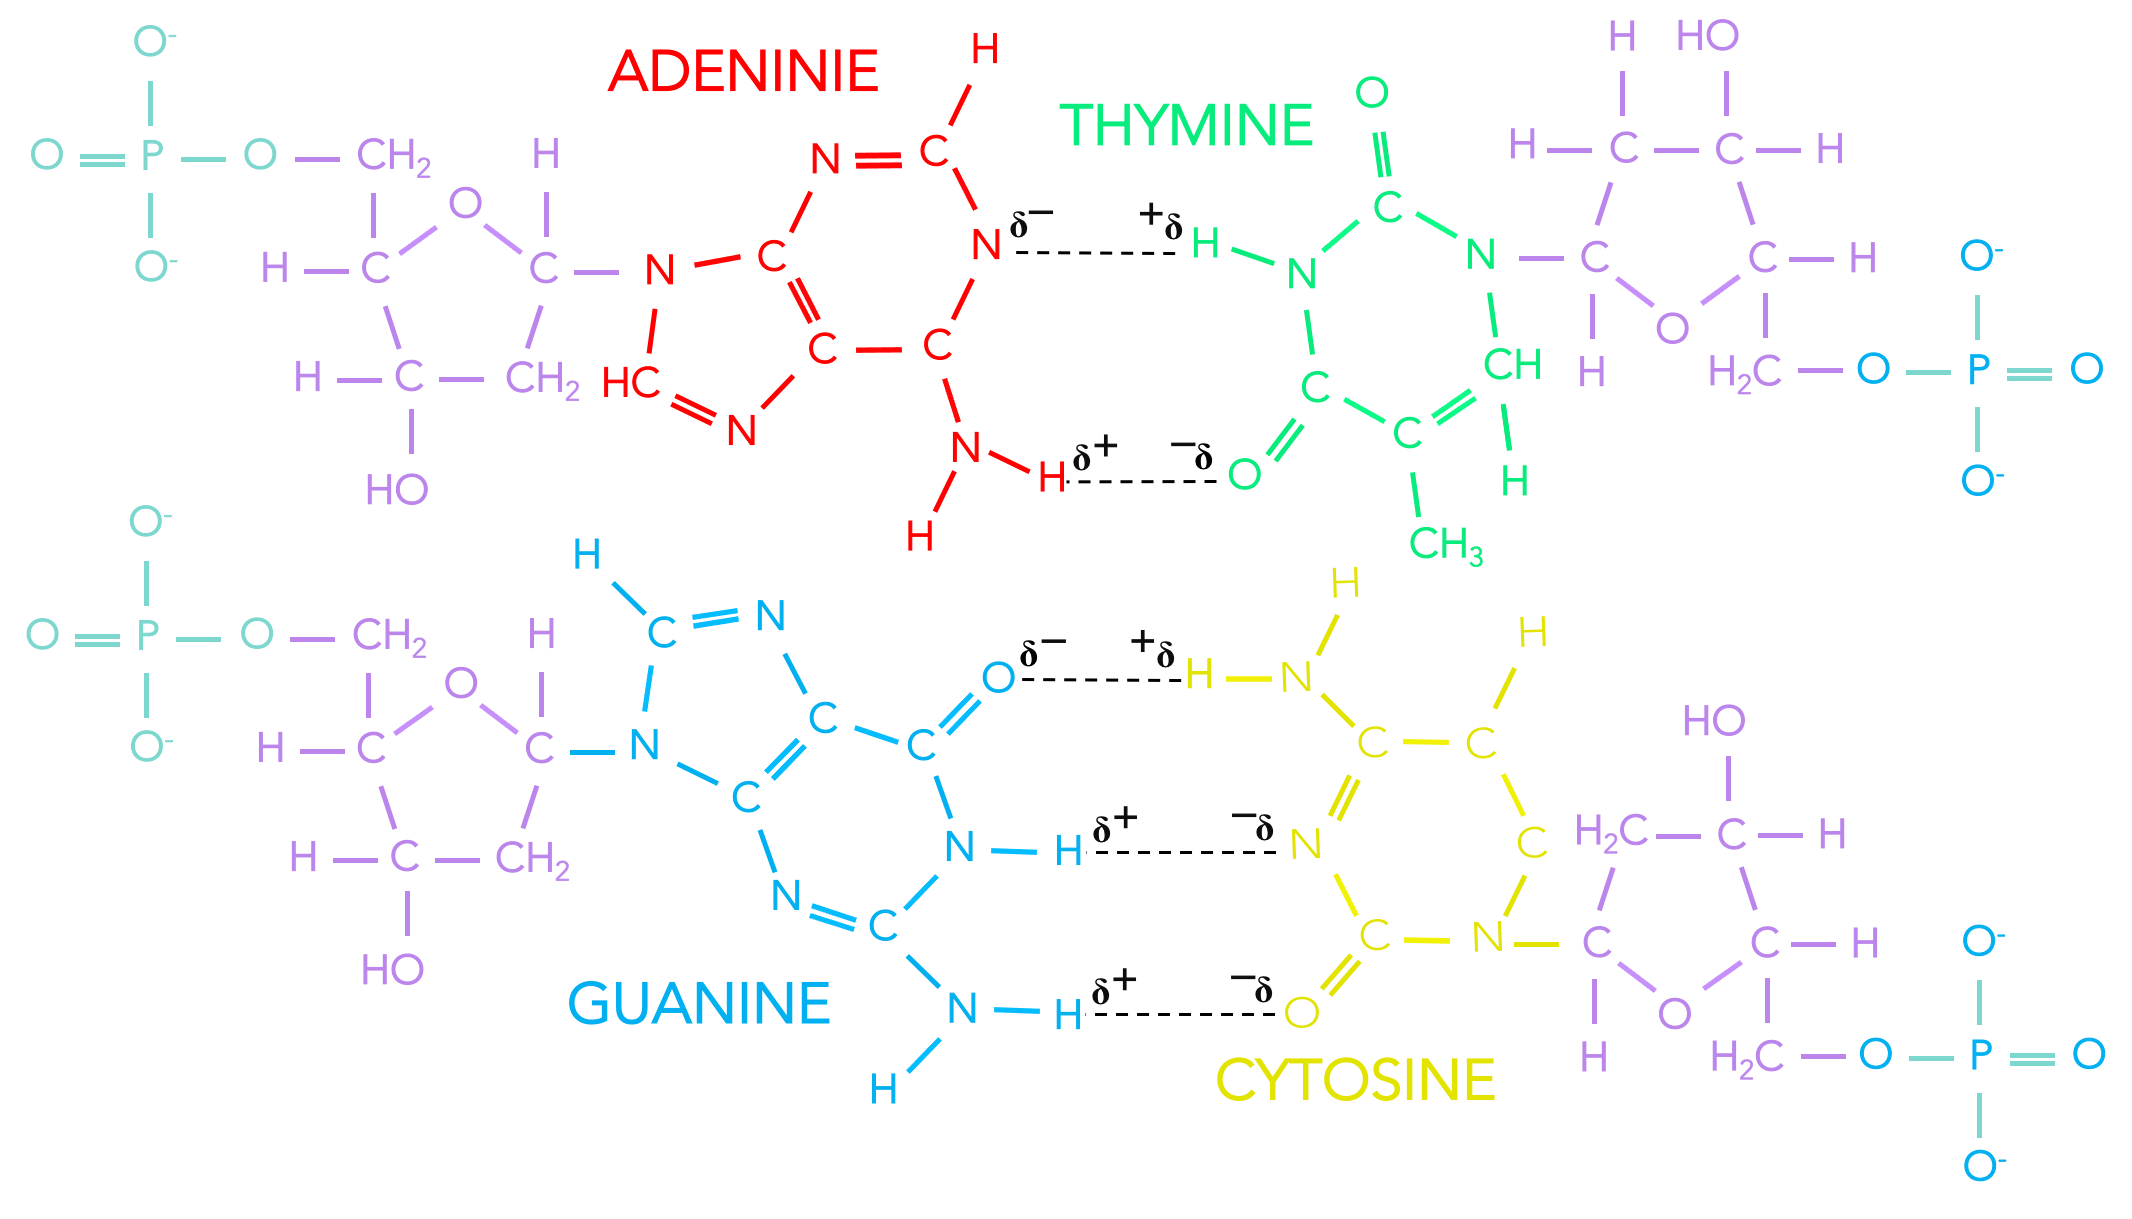 Figure 10.  Base pairing in DNA. Deoxyribonucleotides connect to adjacent deoxyribonucleotides based on complementary base pairing. DNA strands connect via hydrogen bonds. Adenine and thymine form two hydrogen bonds. Guanine and cytosine bind with three hydrogen bonds.